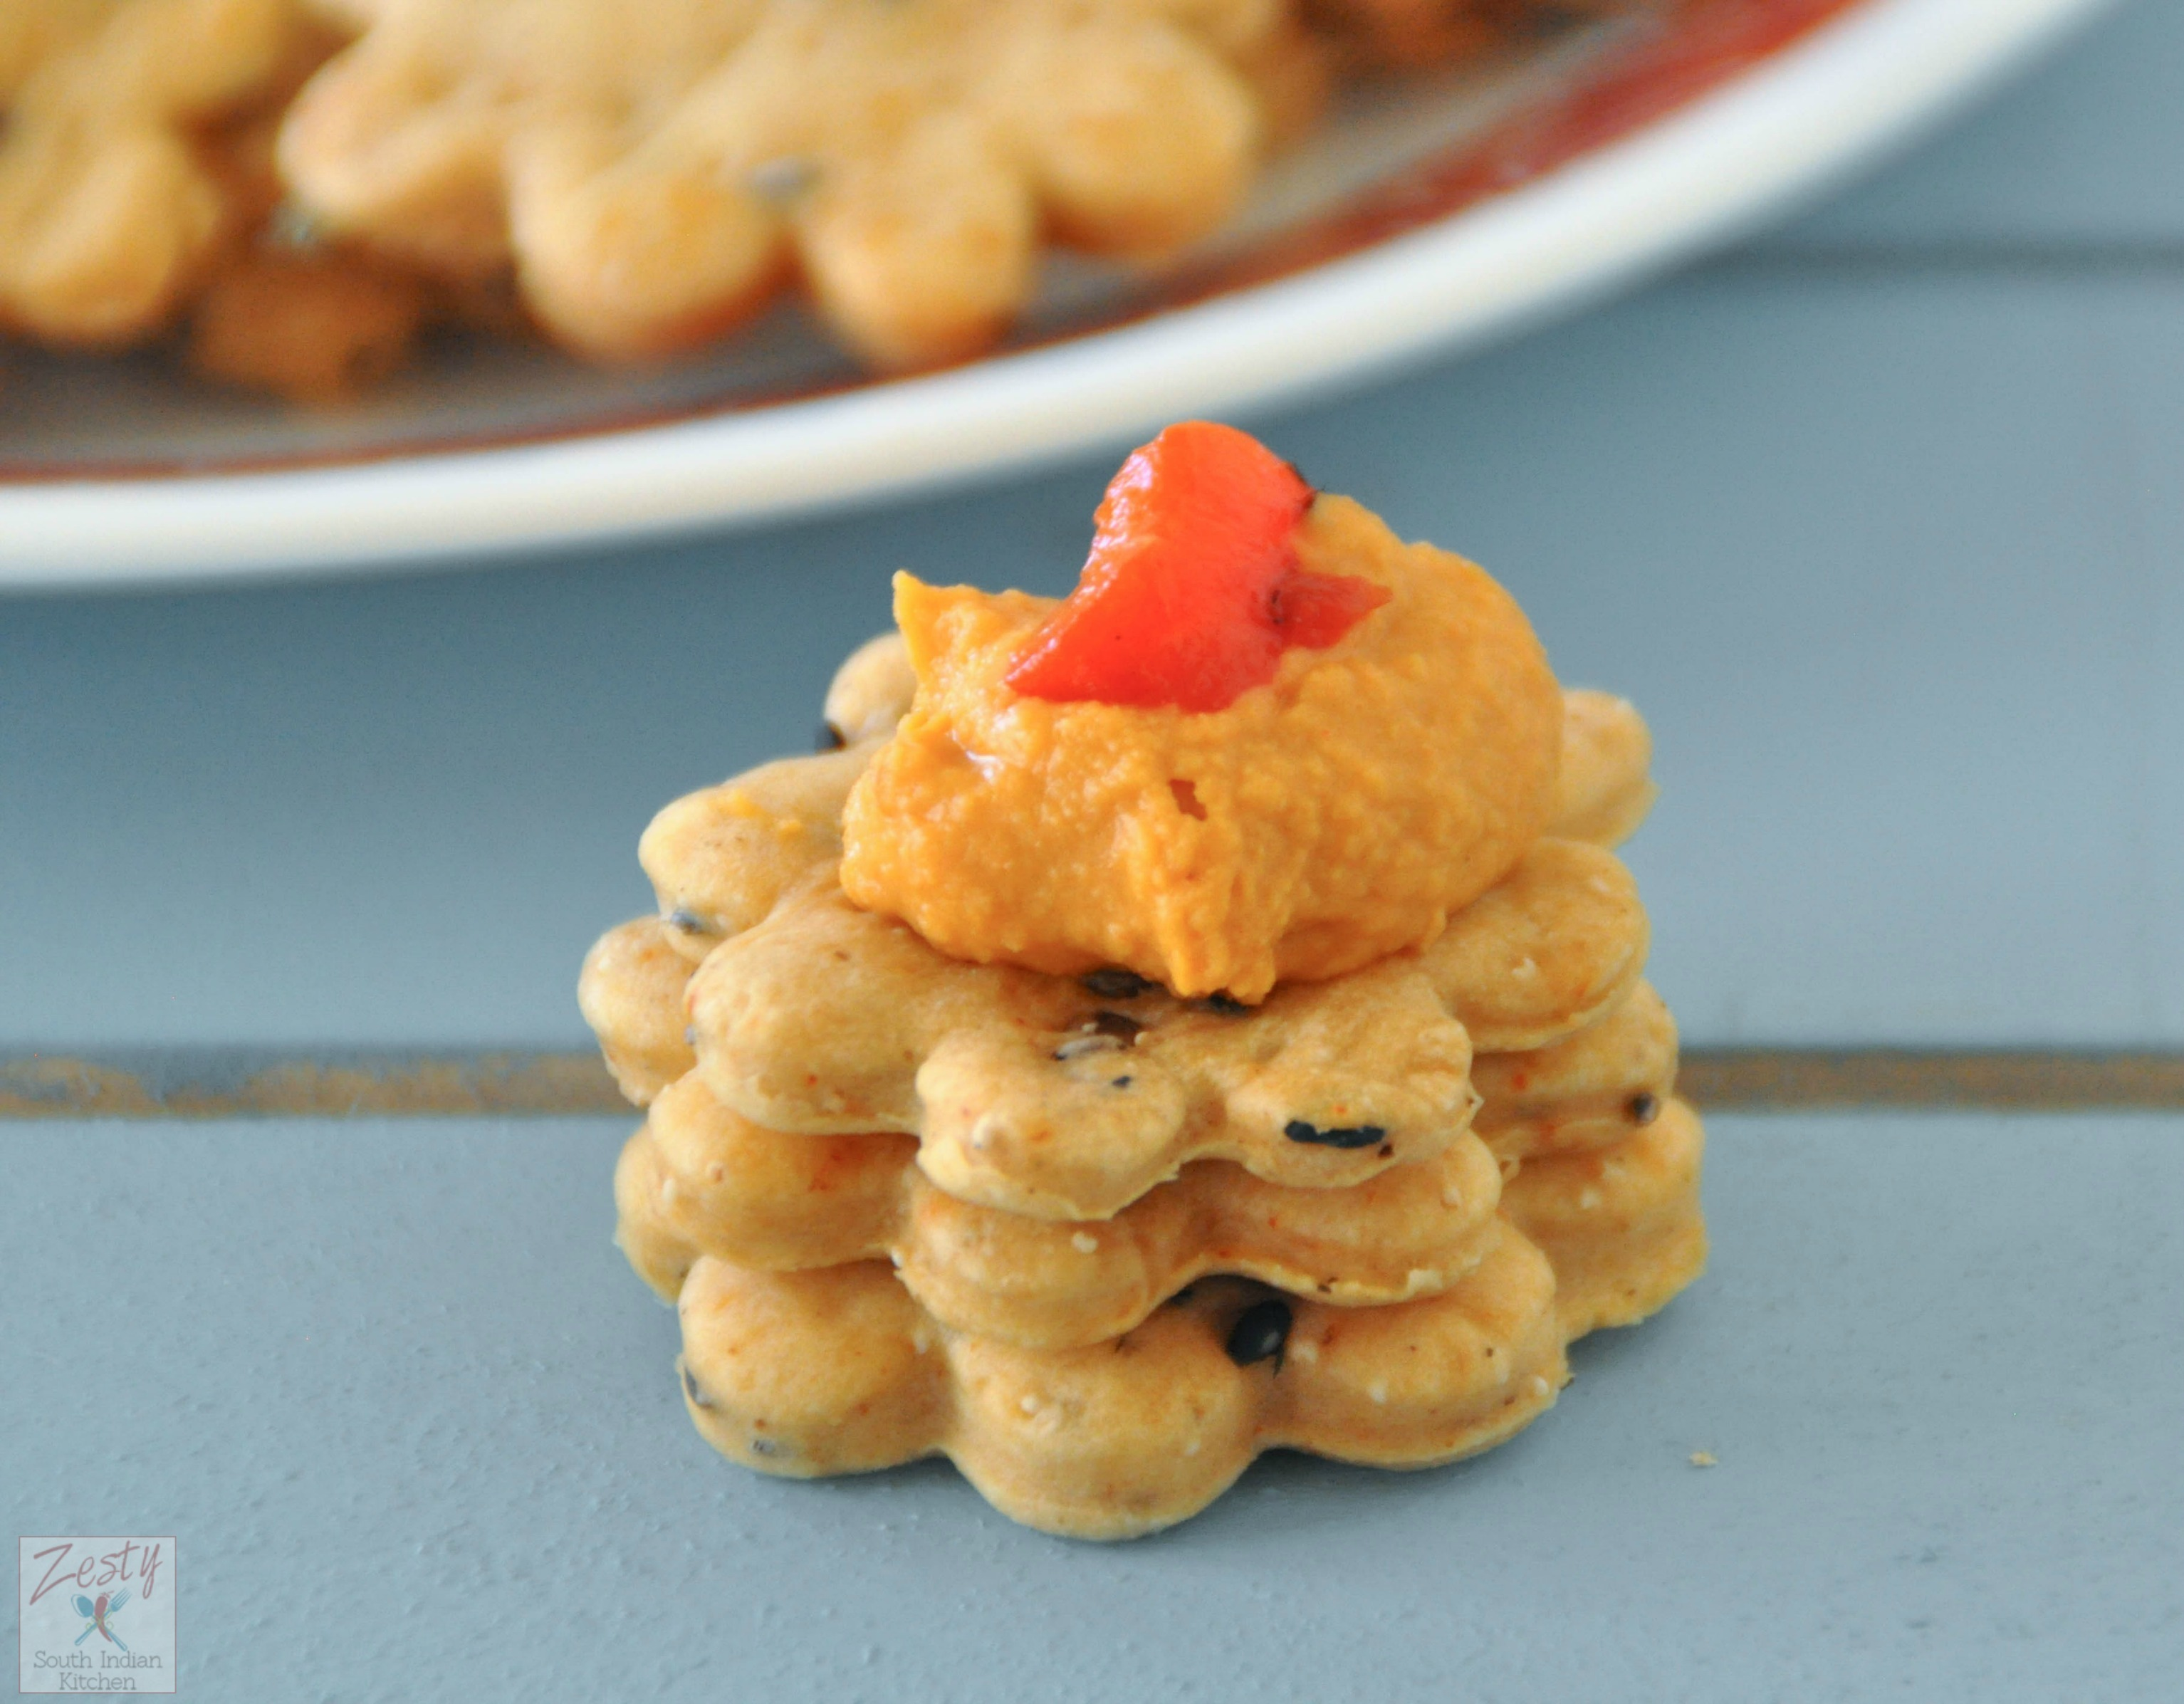 Chipotle olive oil crackers and roasted red pepper hummus